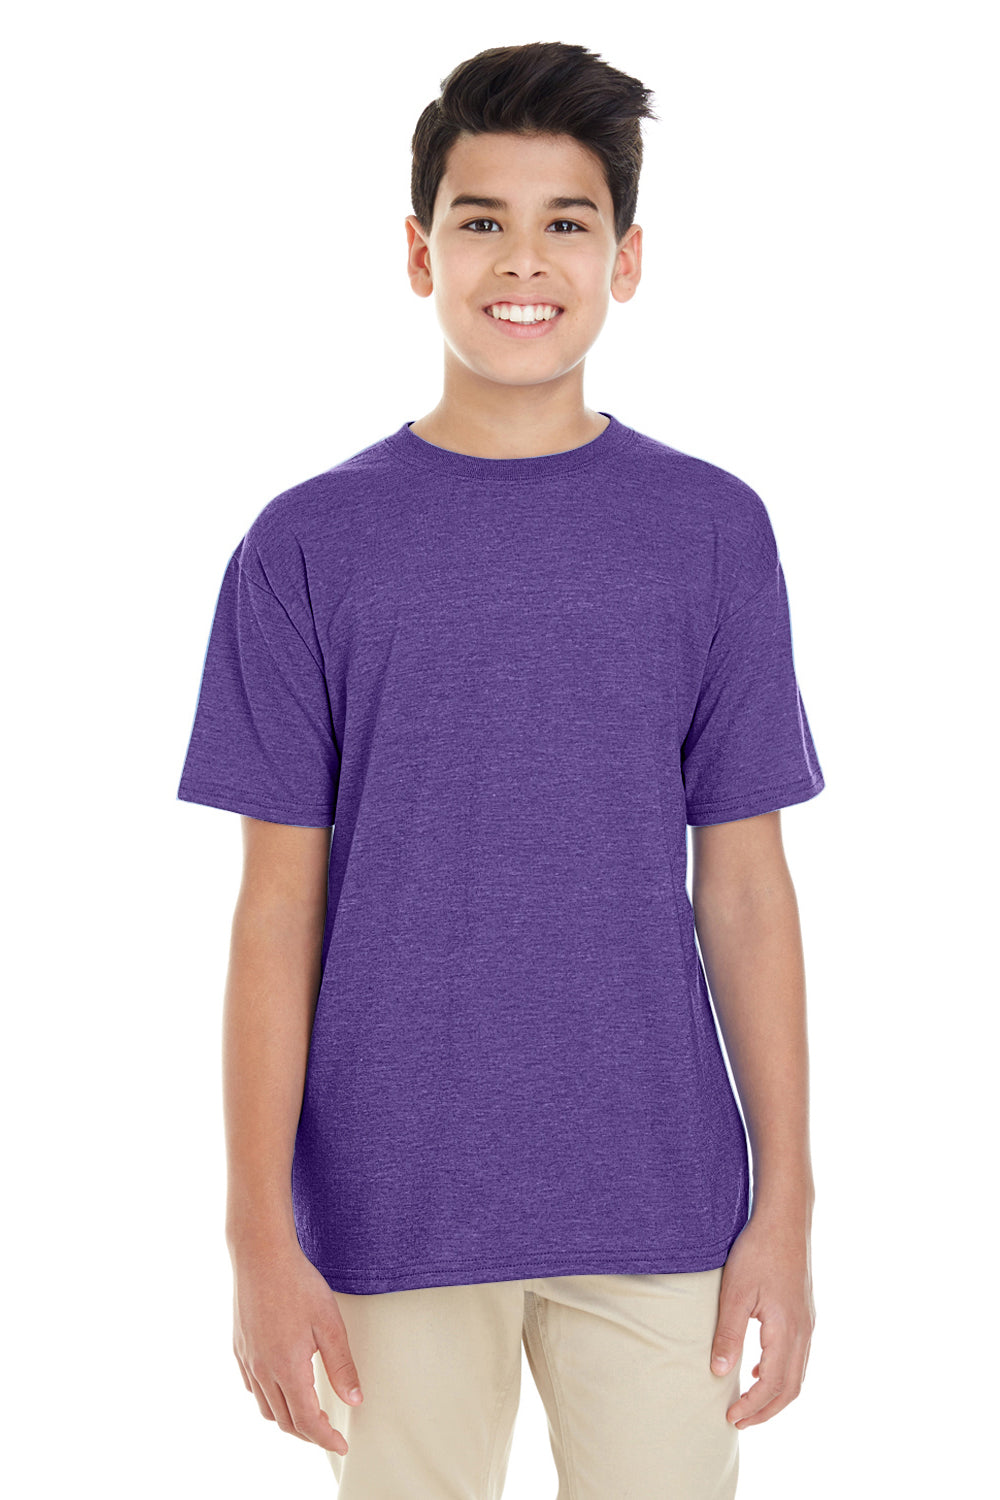 Gildan G645B Youth Softstyle Short Sleeve Crewneck T-Shirt Heather Purple Front